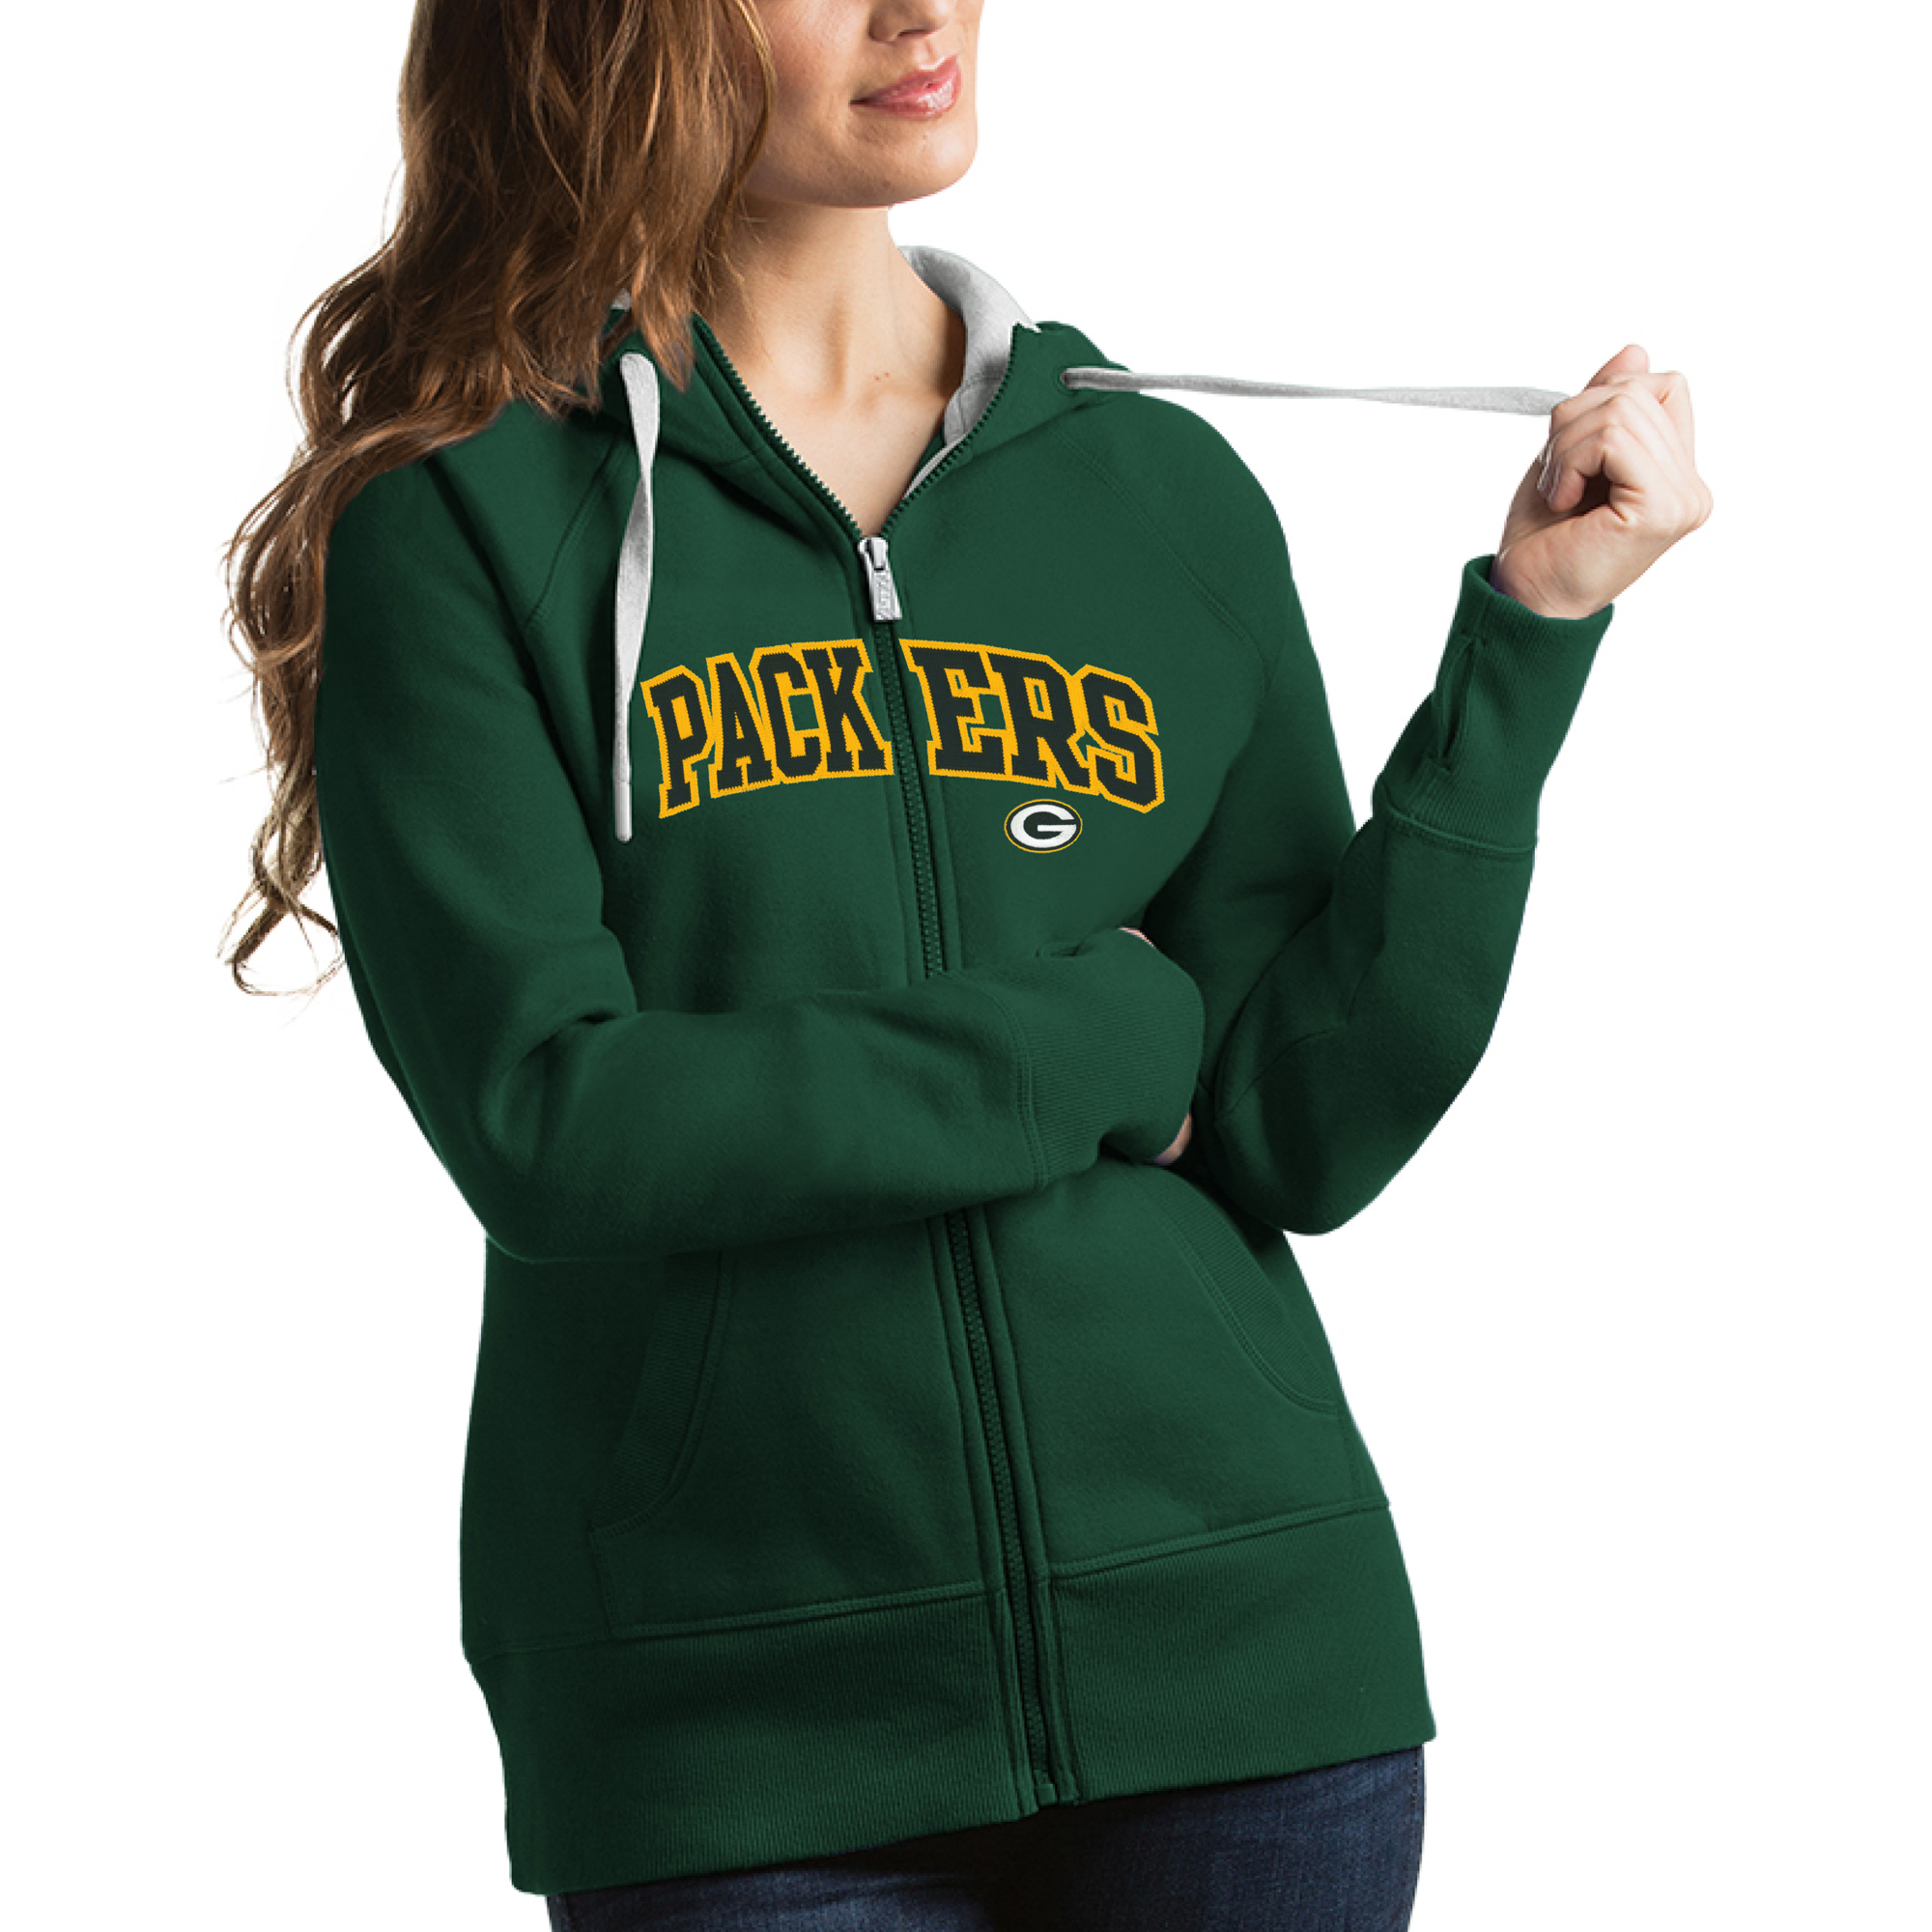 size 40 62d3b 5a5a2 Green Bay Packers Antigua Women's Victory Full-Zip Hoodie - Green